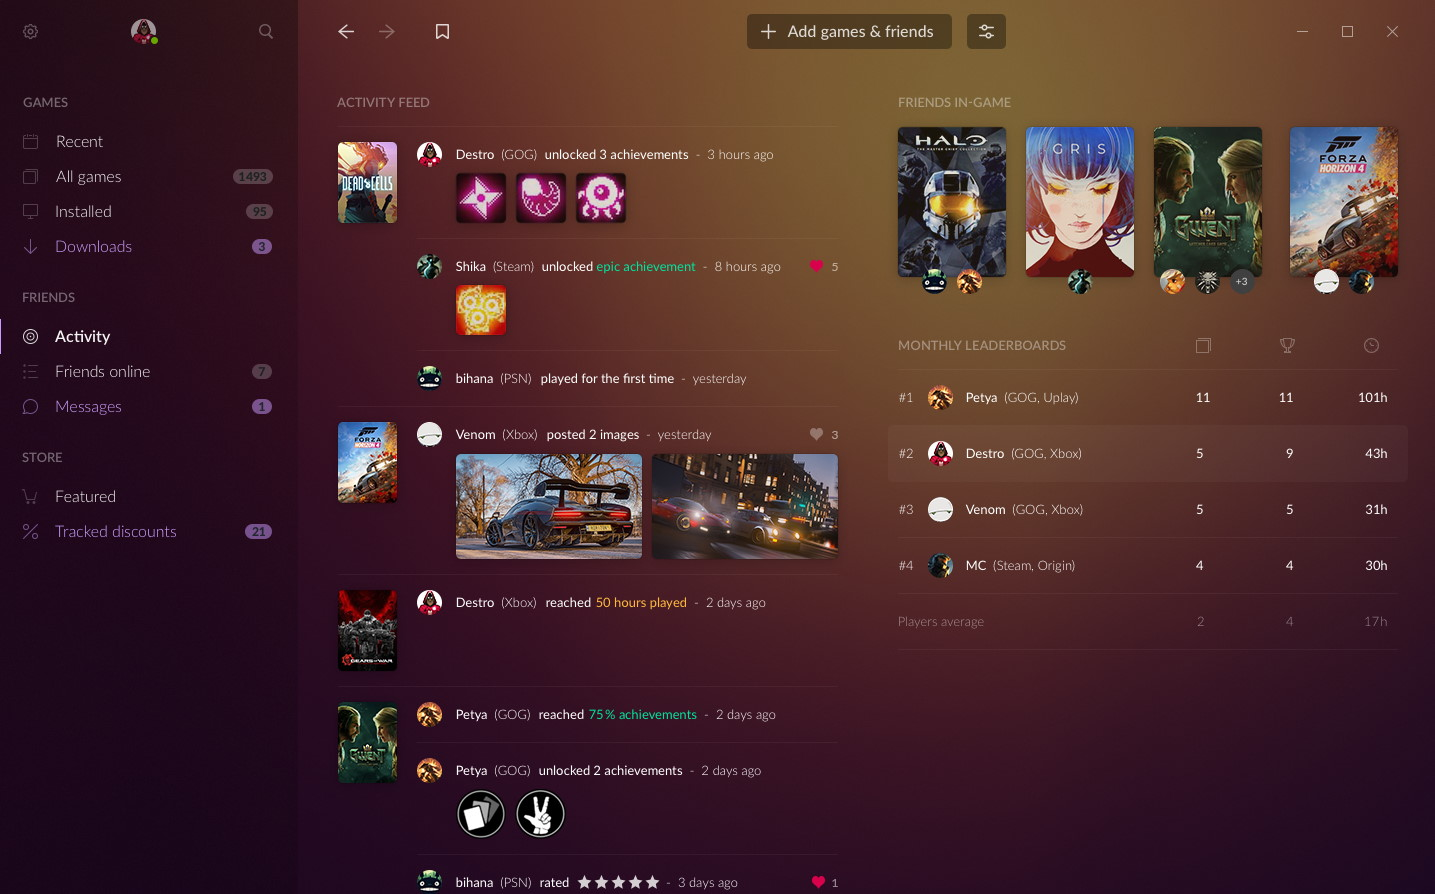 GOG Galaxy 2.0 aims to bring games from all PC and console platforms under one roof | PC Gamer